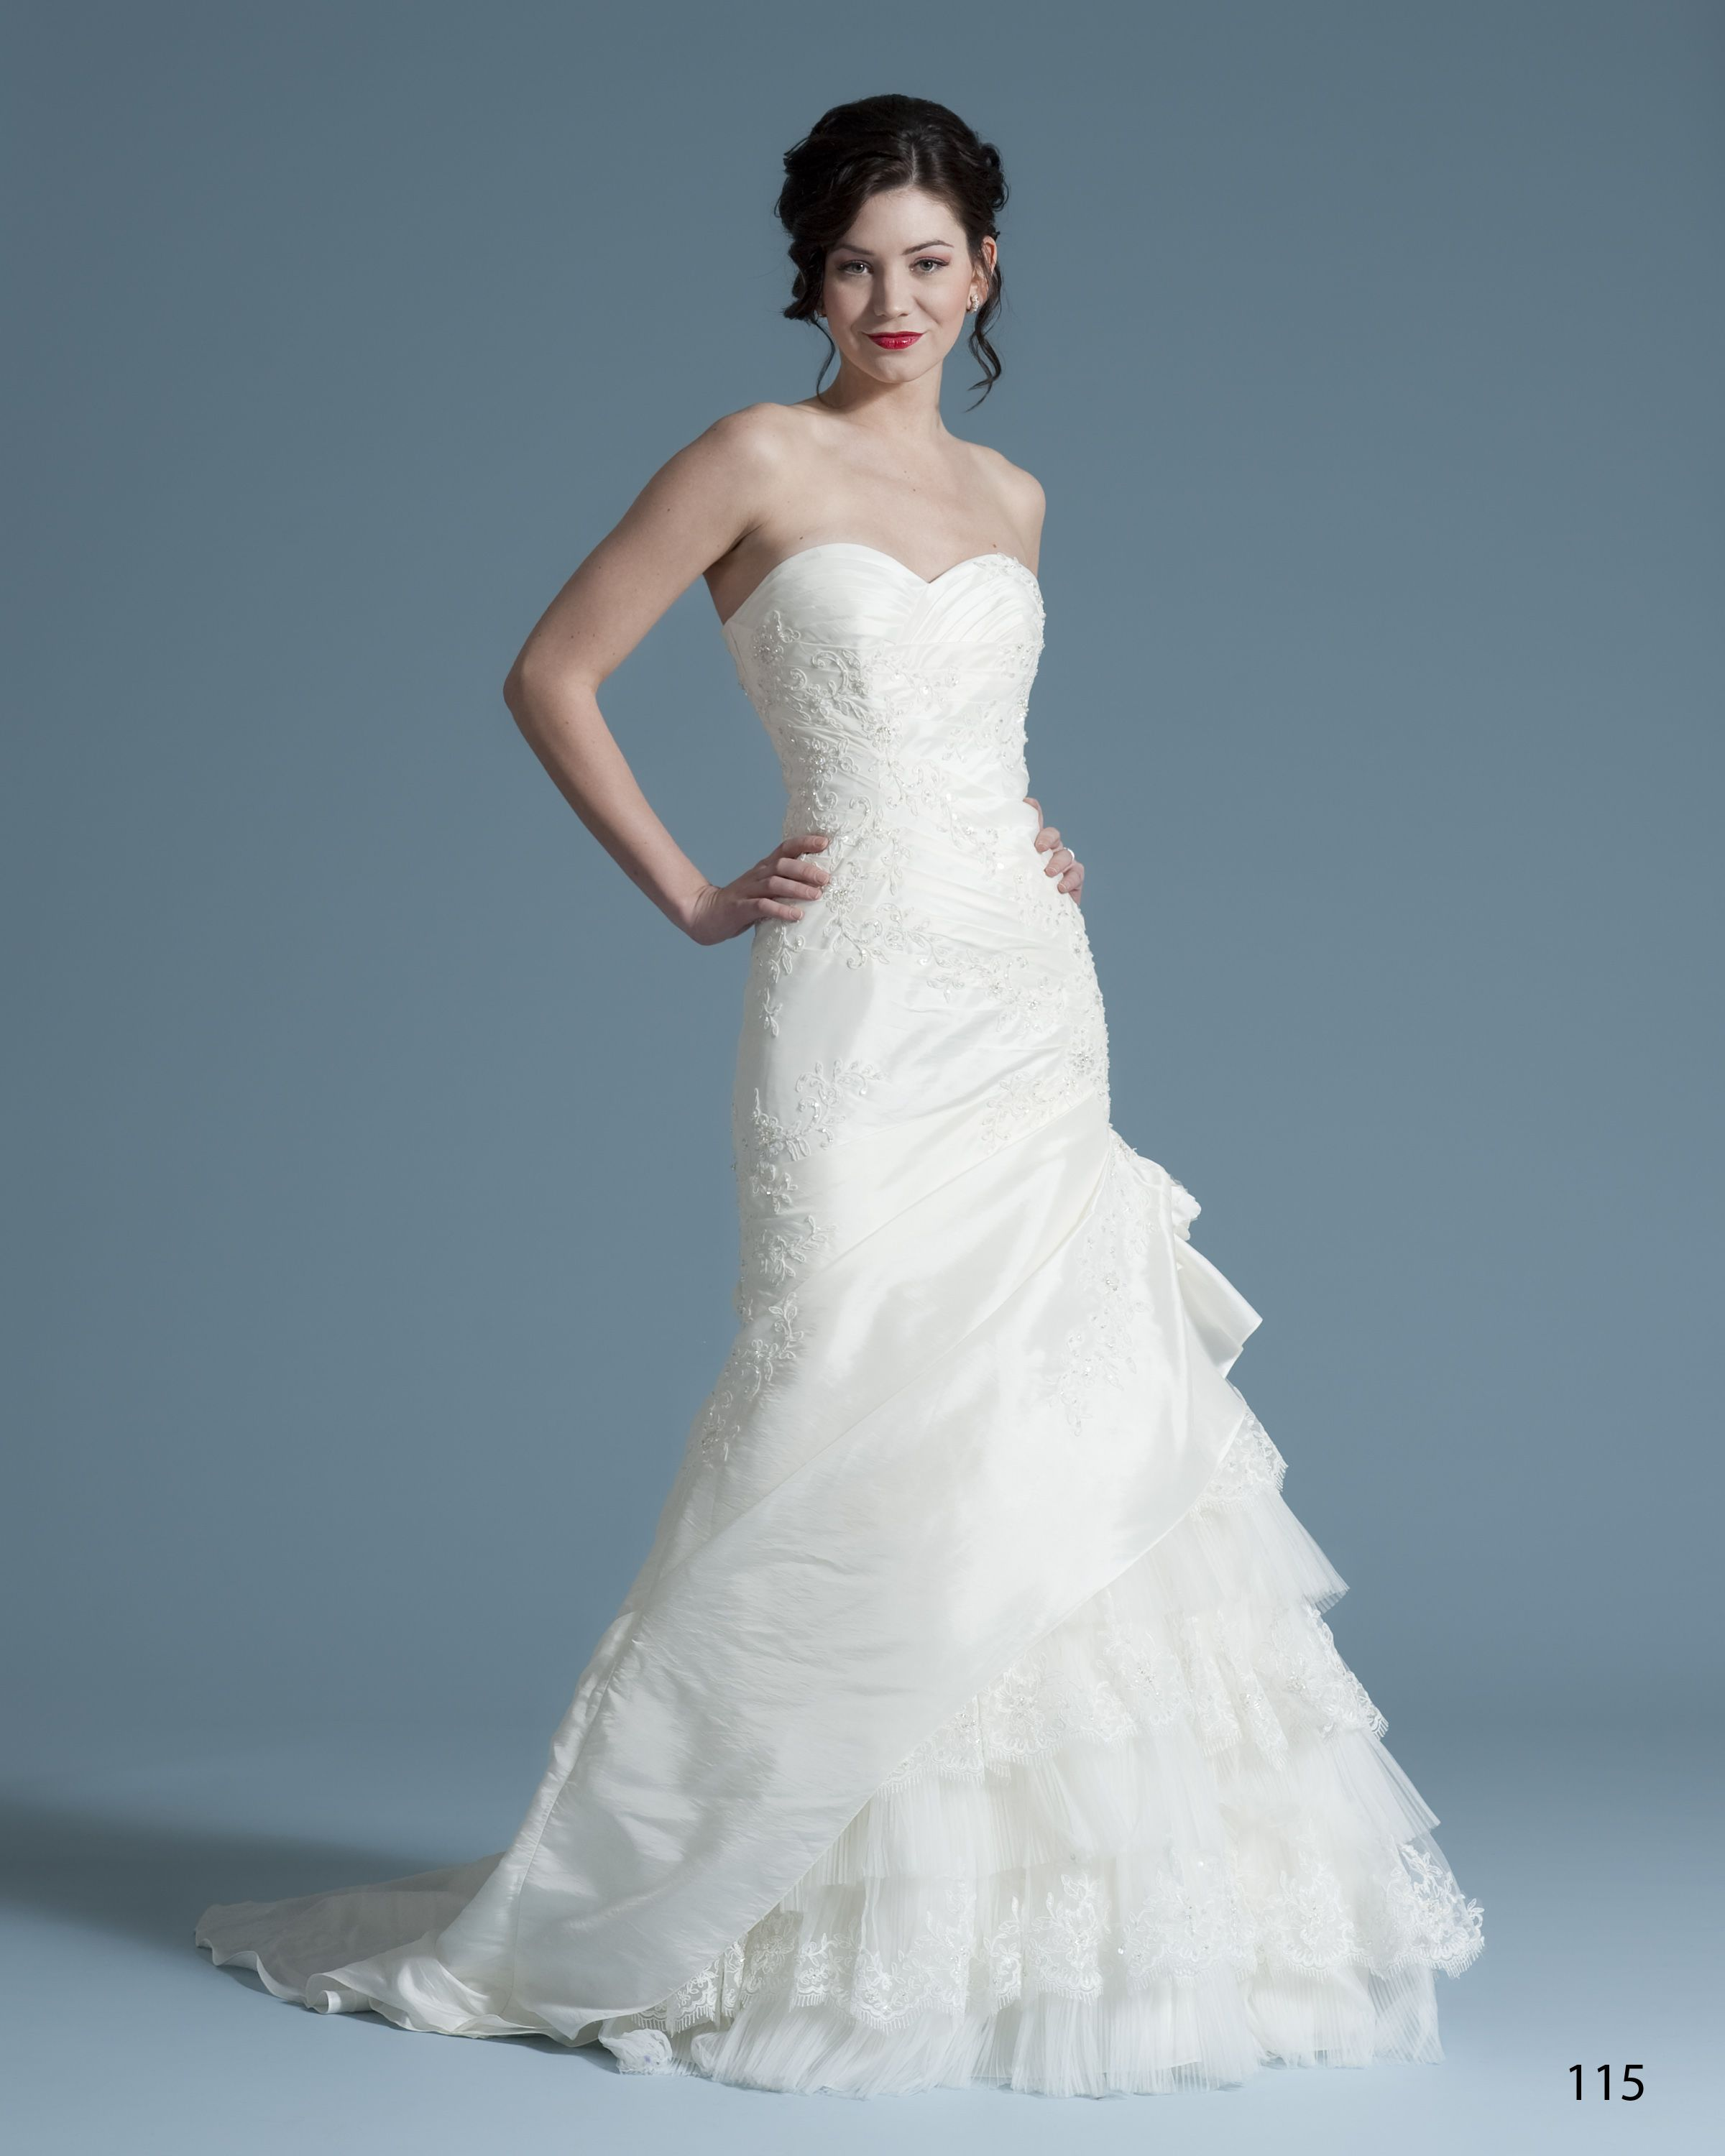 La Sposa By Pronovias Madeira Couture Bridal Gown Receive An Extra 10 Off Discount Designer Wedding Dresses Used Bridesmaid Dresses Designer Wedding Dresses